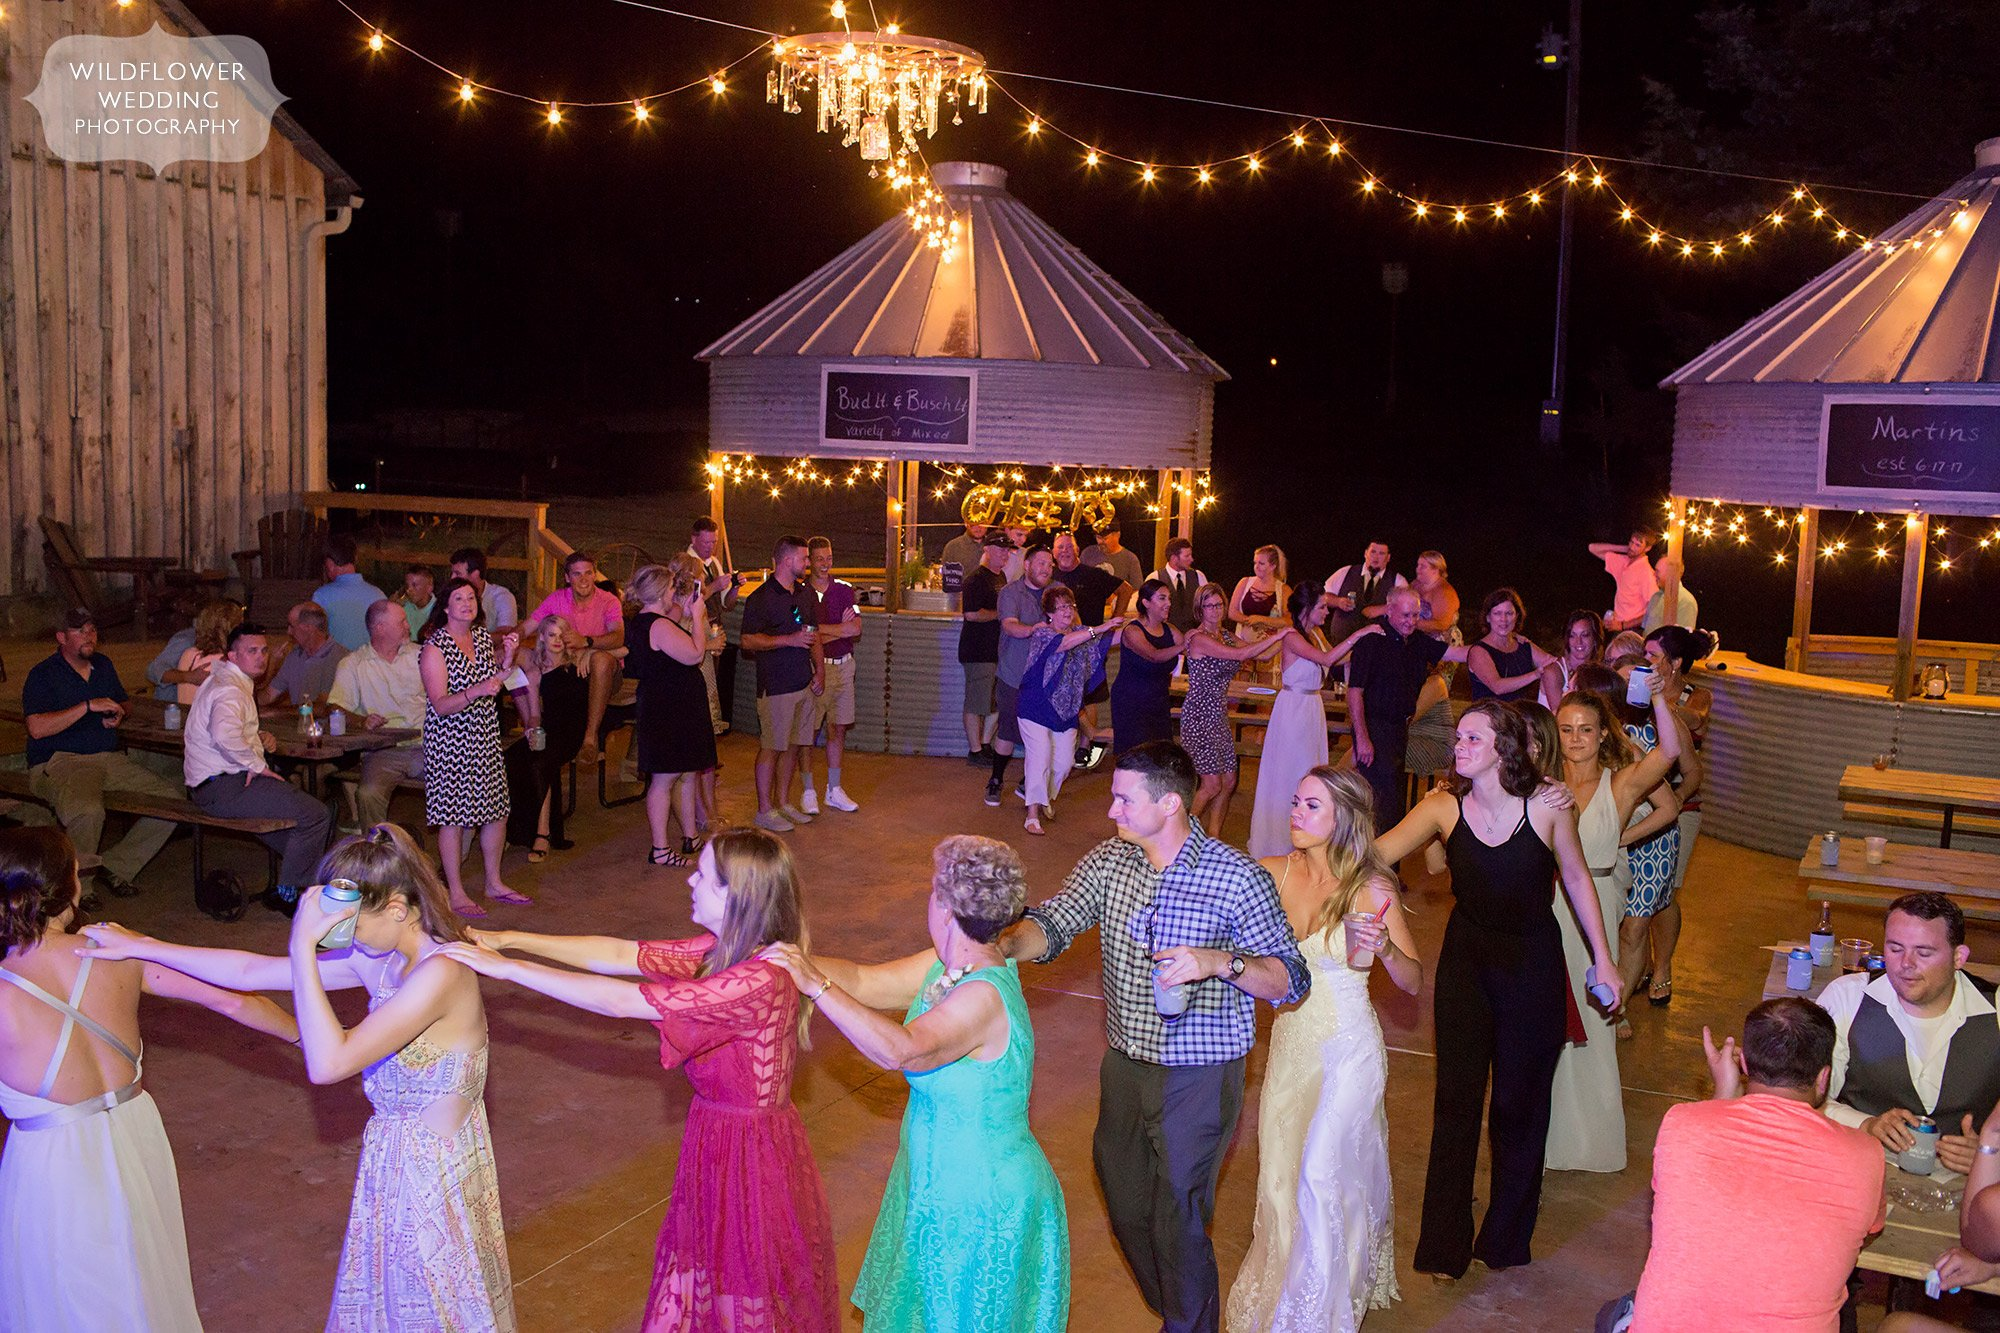 Wedding guests form a conga line on the outdoor dance patio at this barn venue in MO.